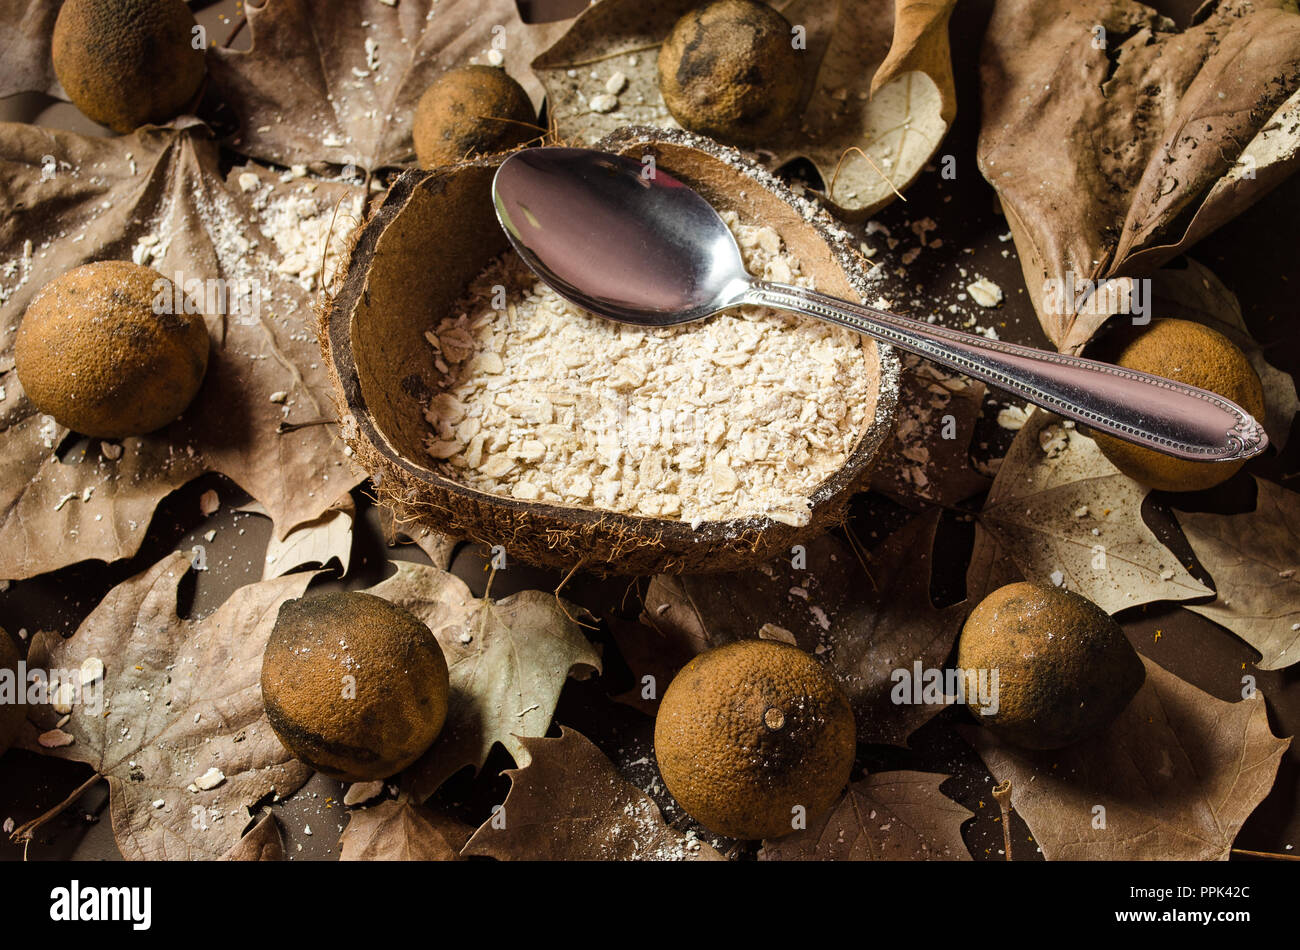 Oatmeal dish served in the middle of a dry coconut, garnished with dried and yellowish lemons, dried leaves on a brown background. - Stock Image